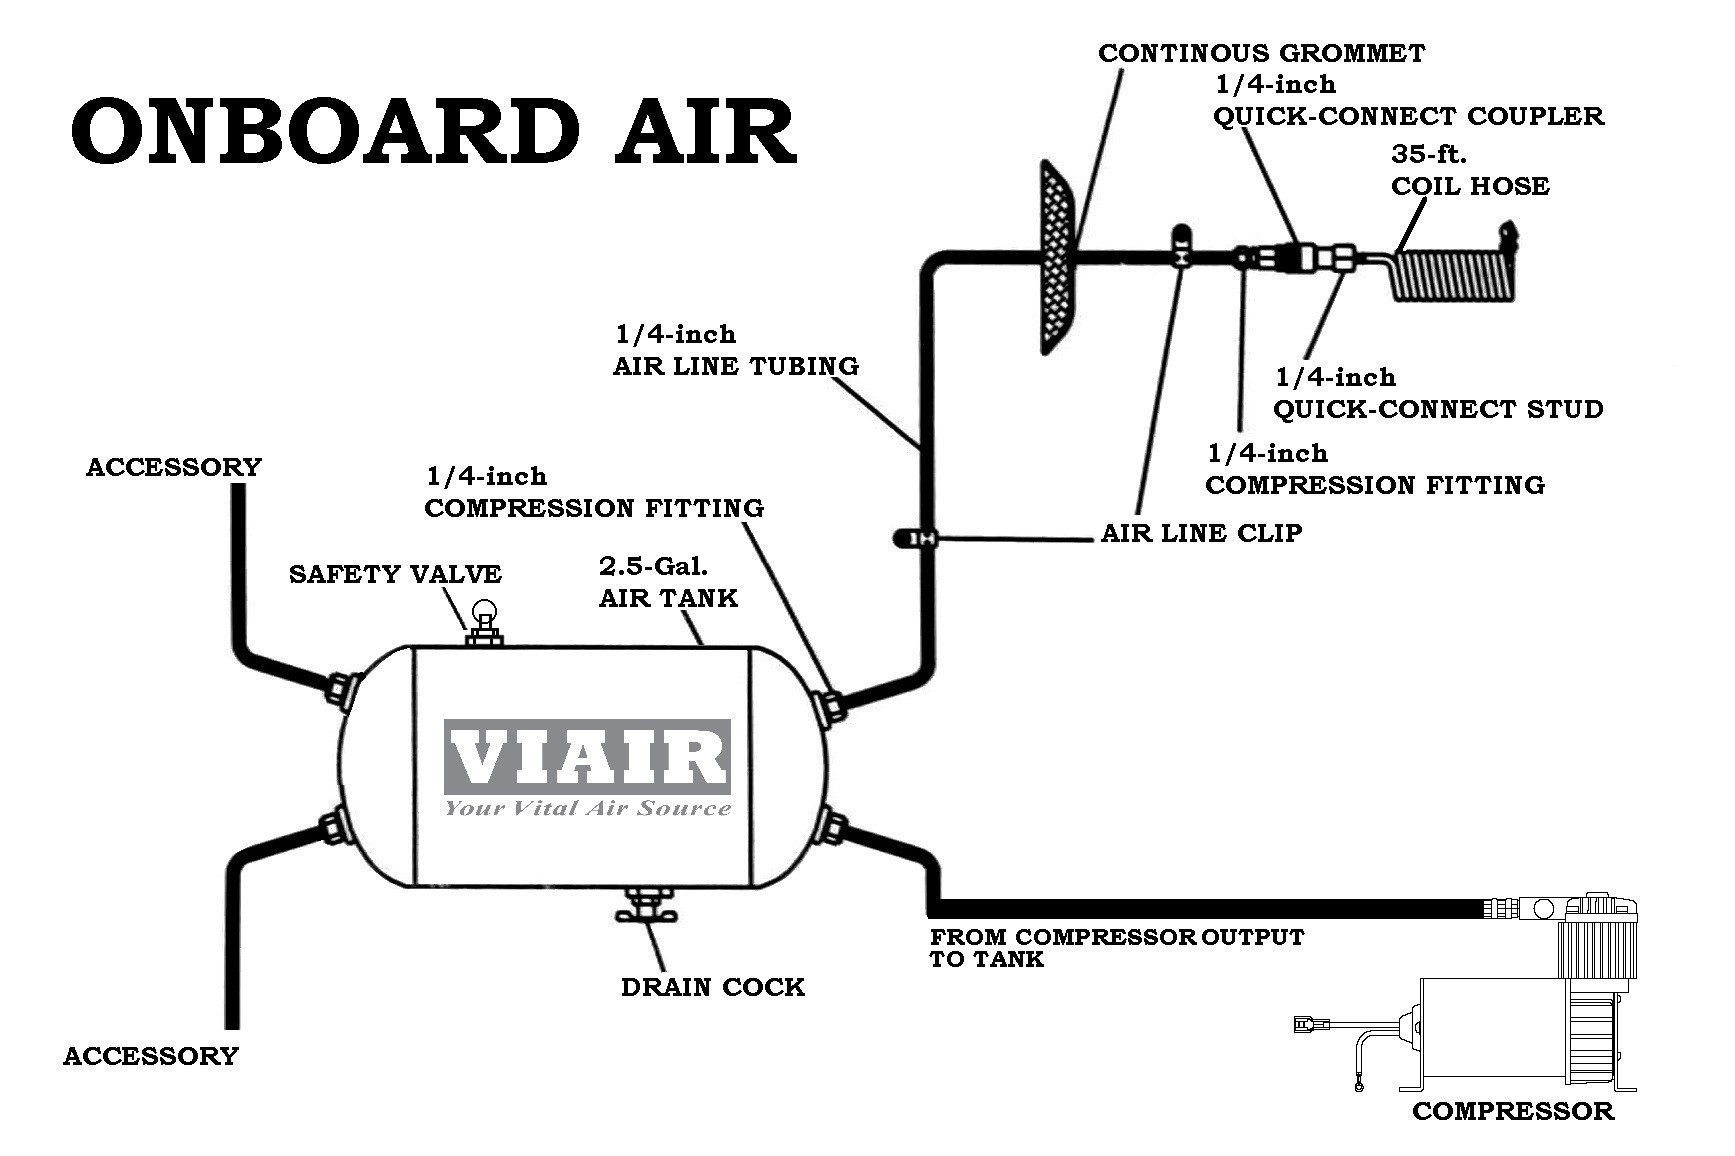 Air Horn Wiring Diagram Best fortable Wiring Diagram for 1 4 Inch Gallery Electrical and